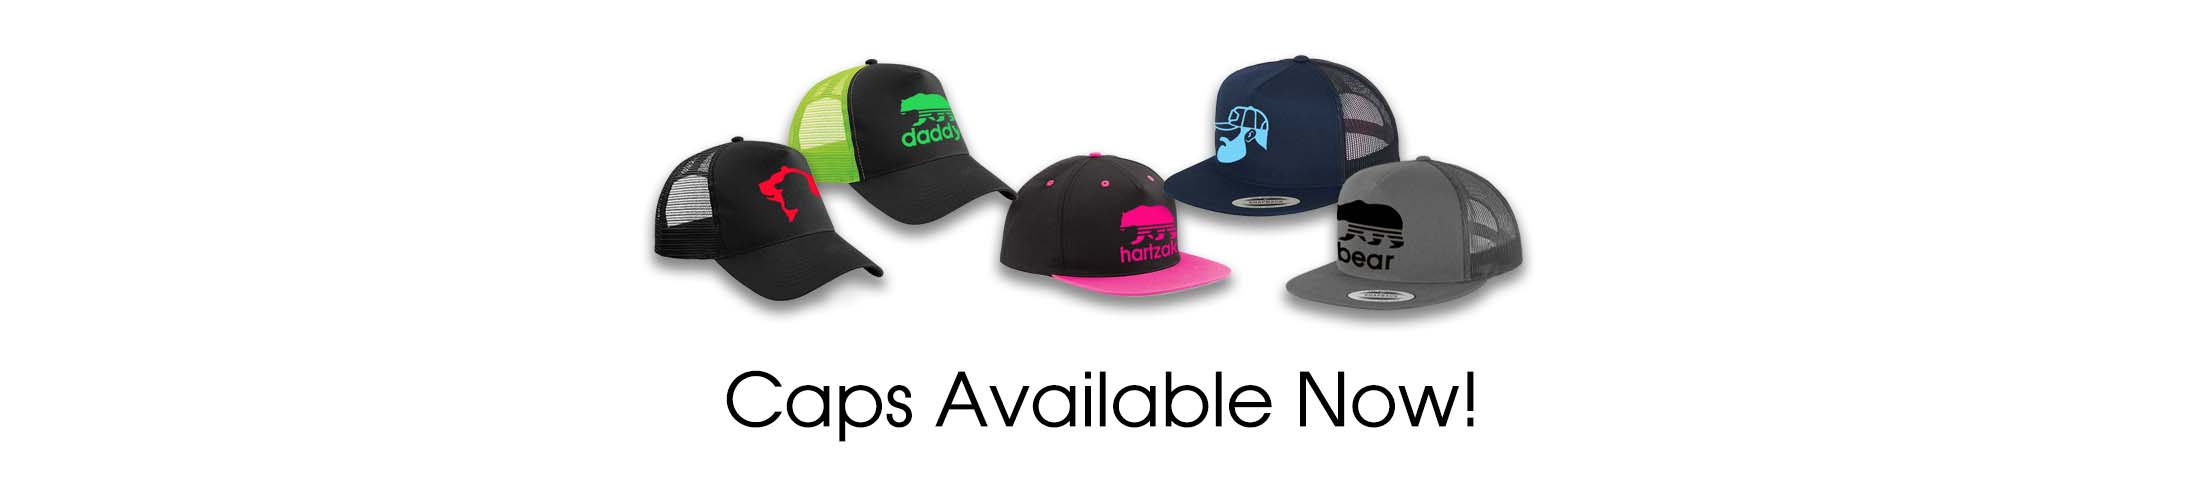 CAPS AVAILABLE NOW 1